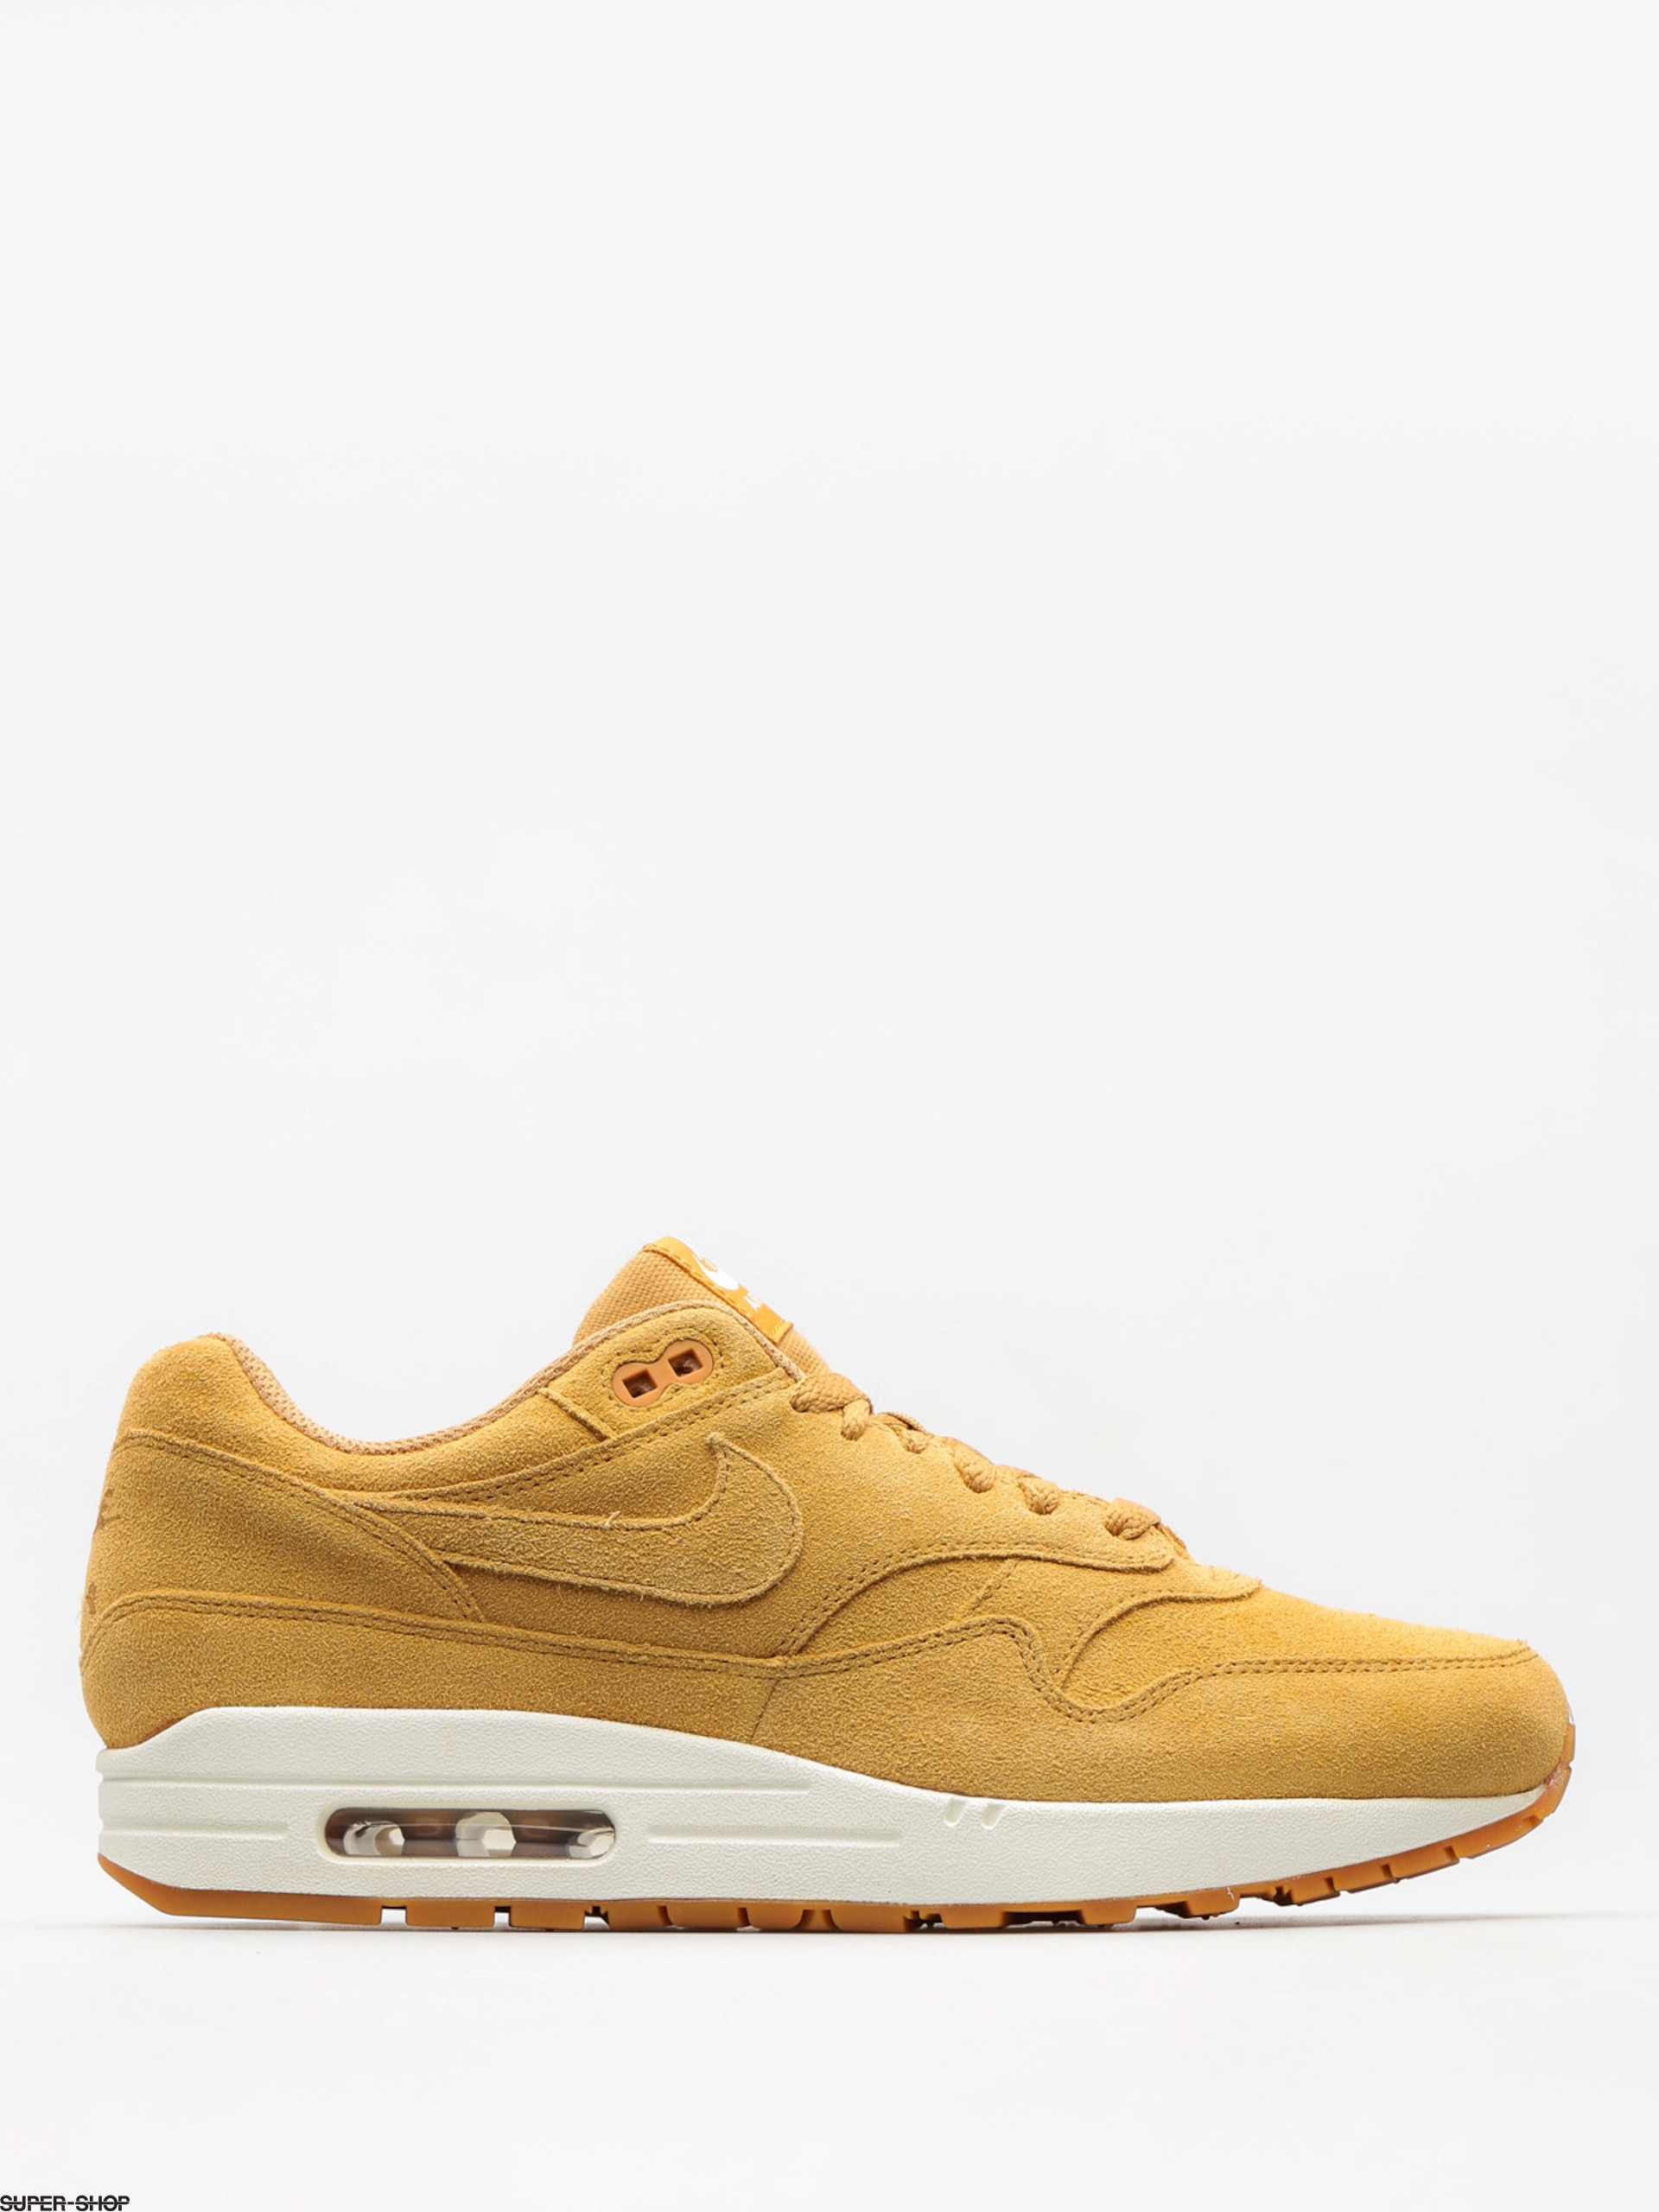 Nike Shoes Air Max 1 (Premium flax/flax sail gum med brown)